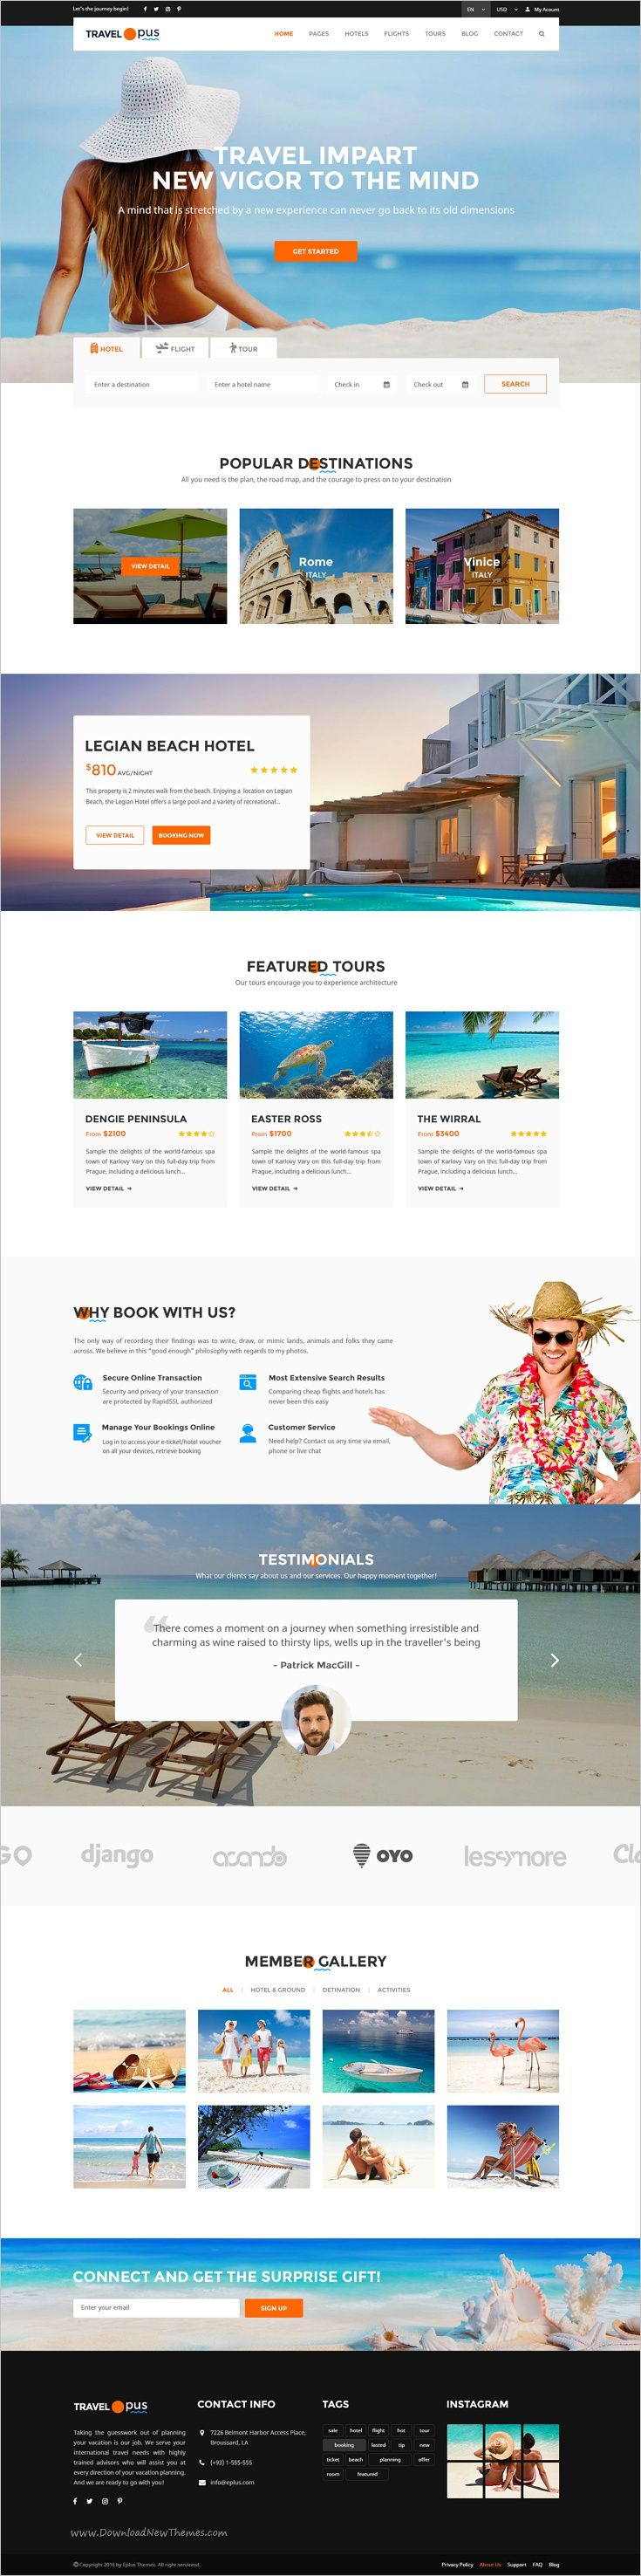 Travel Opus is a beautiful #PSD template for #travel and tour #agencies websites download now➩ https://themeforest.net/item/travel-opus-psd-templates/19222074?ref=Datasata